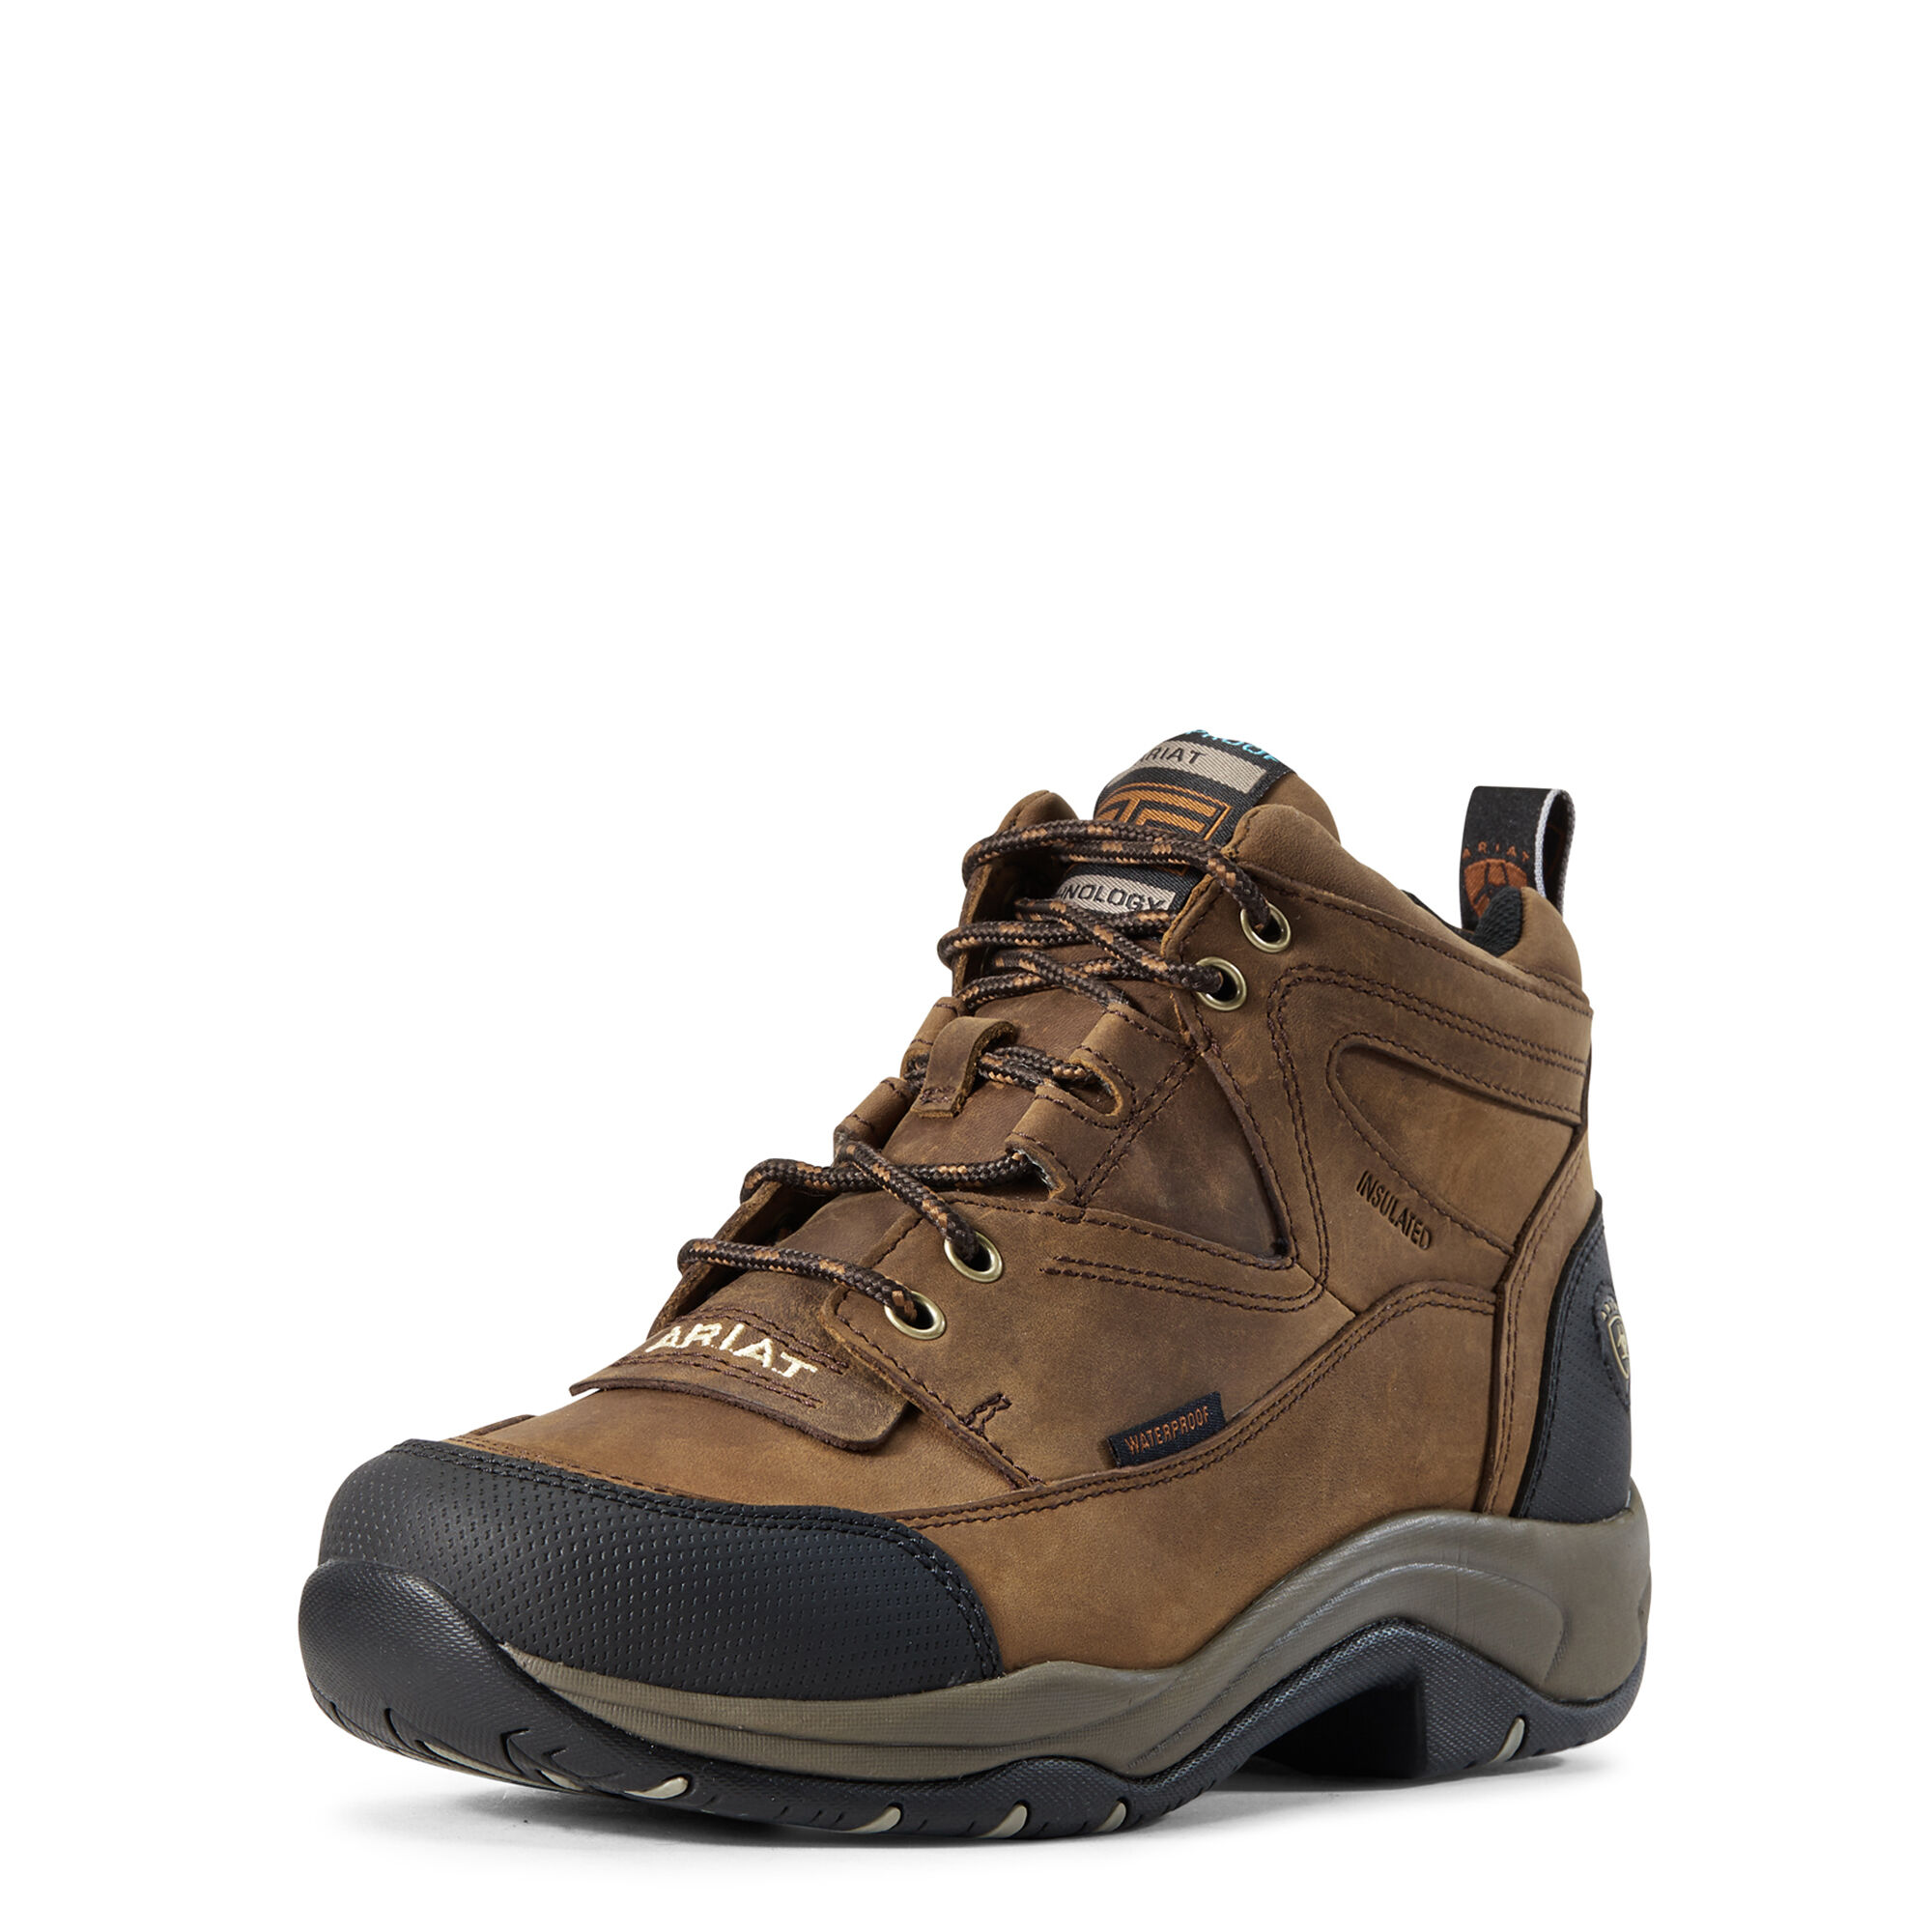 Women's Terrain Waterproof Insulated Boots in Distressed Brown by Ariat